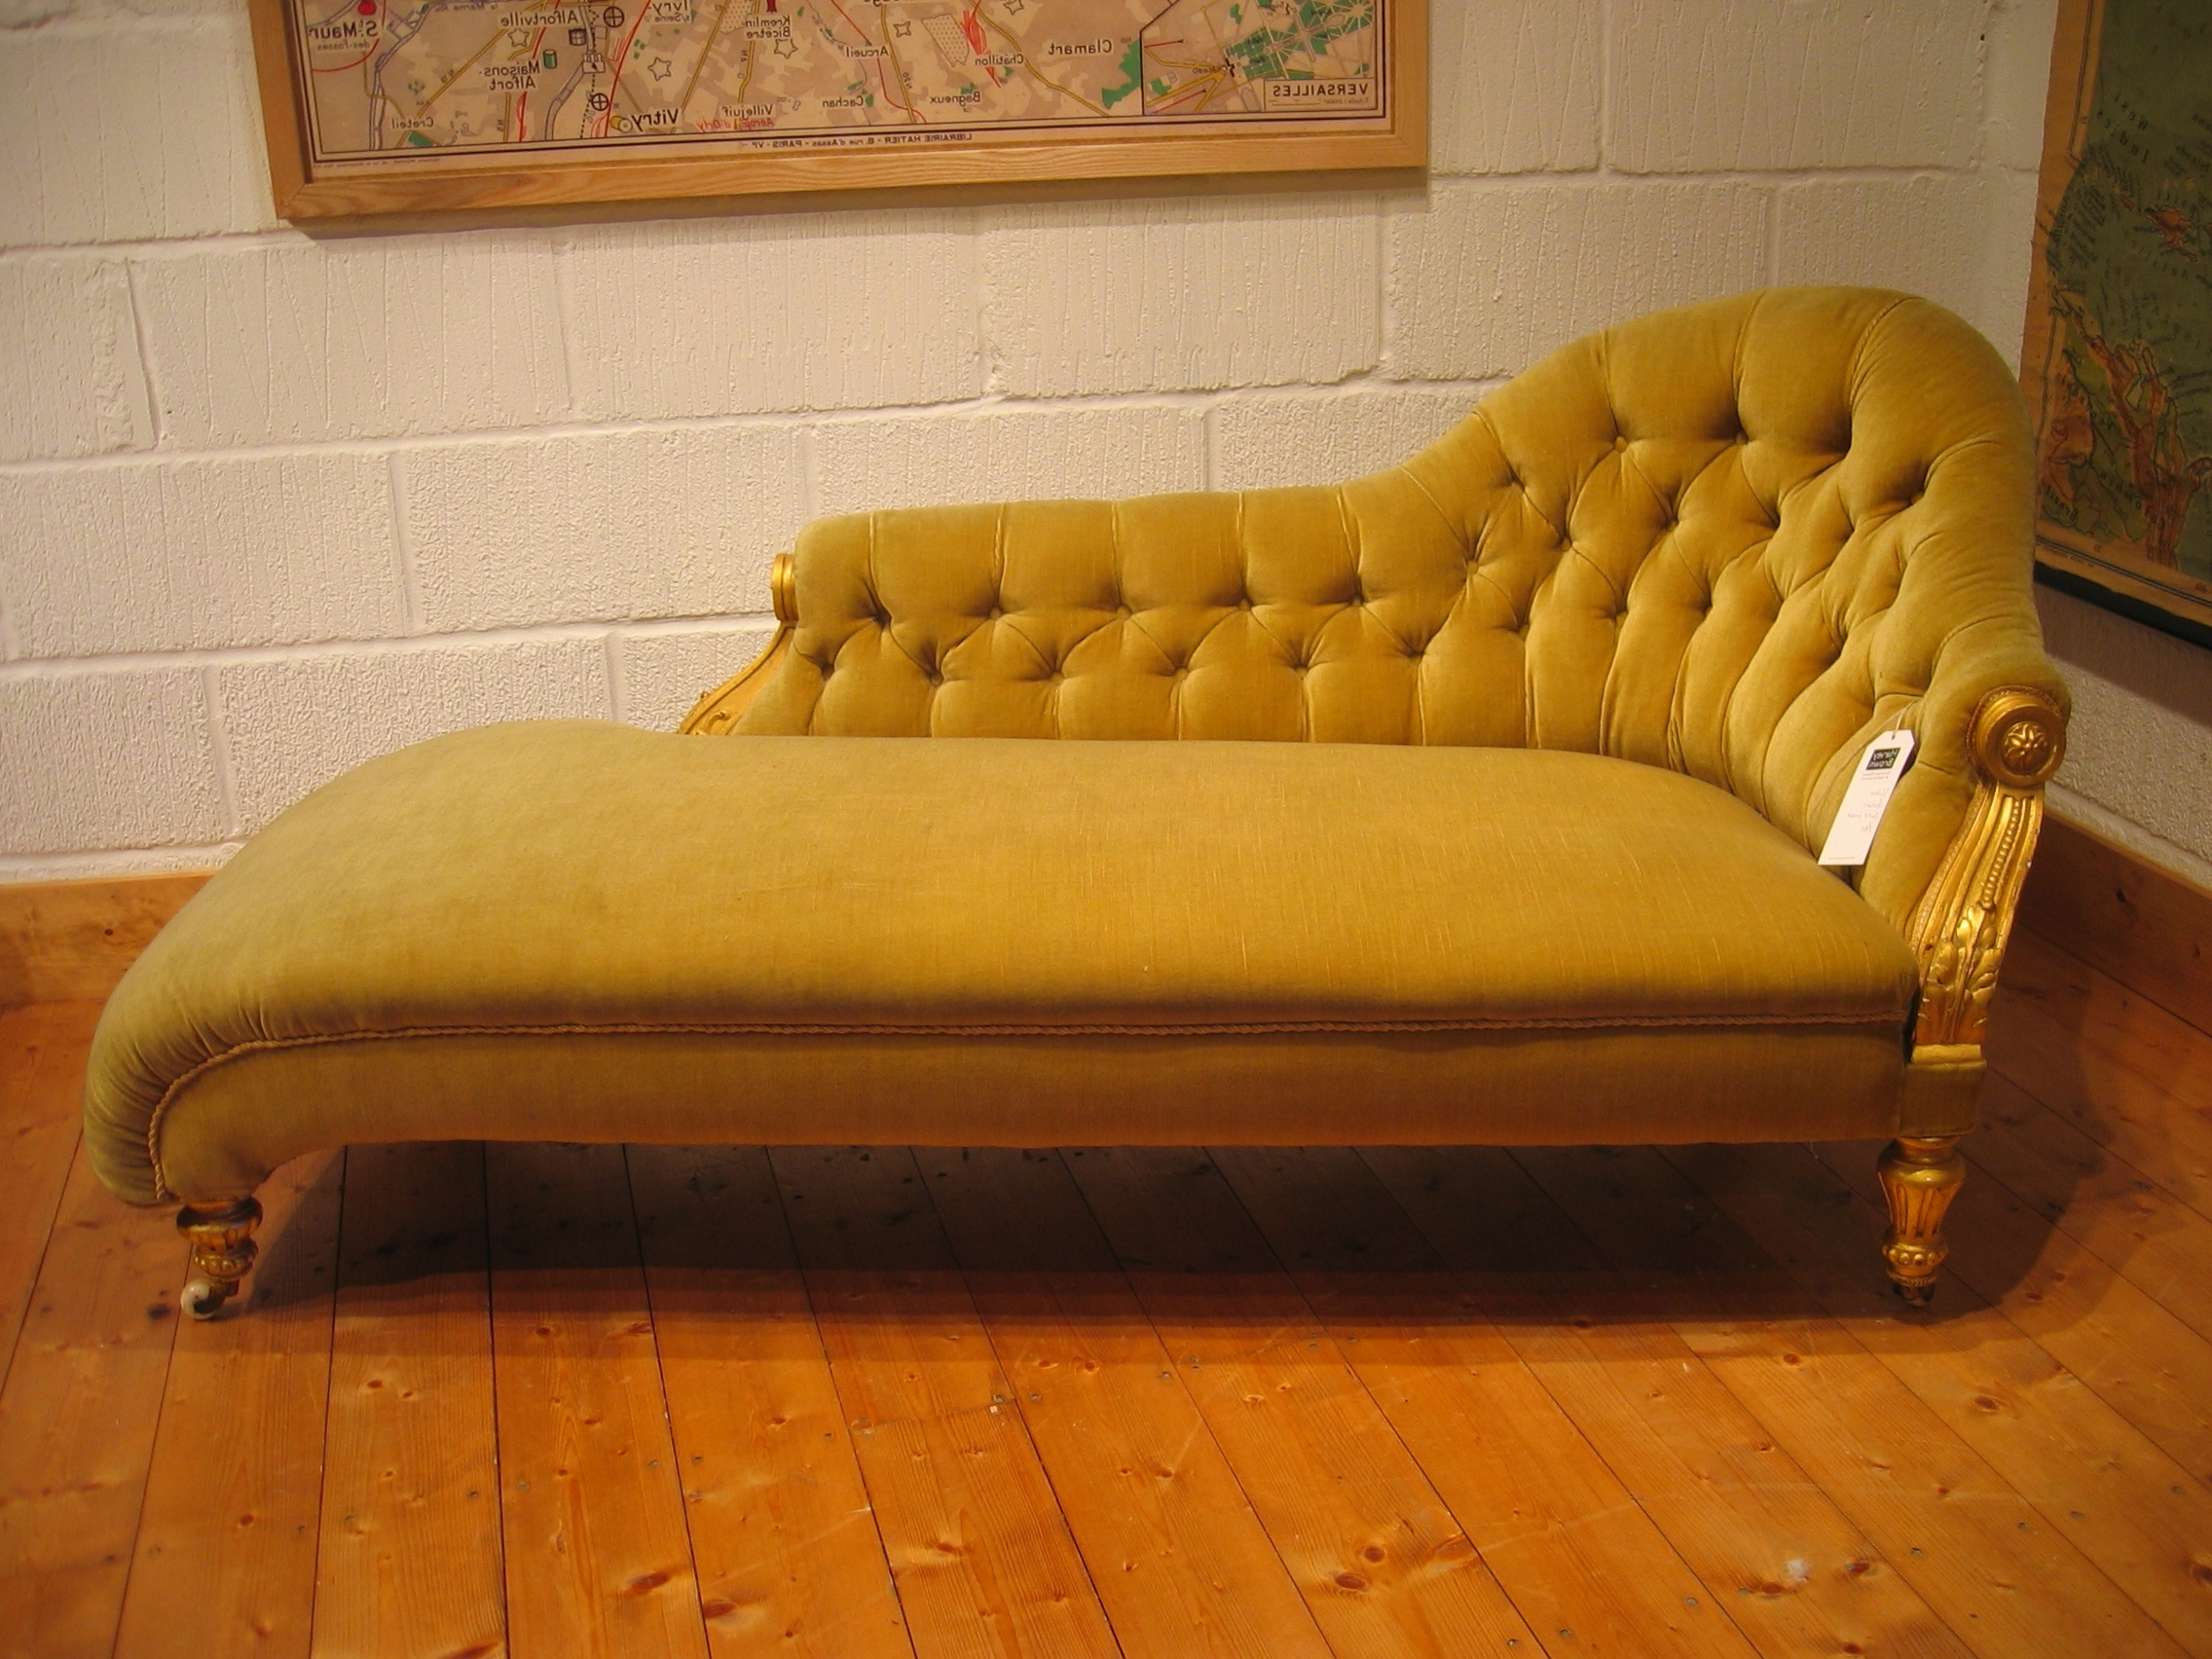 Favorite Yellow Color Antique Victorian Chaise Lounge Sofa Bed With Wooden Inside Vintage Chaise Lounges (View 5 of 15)